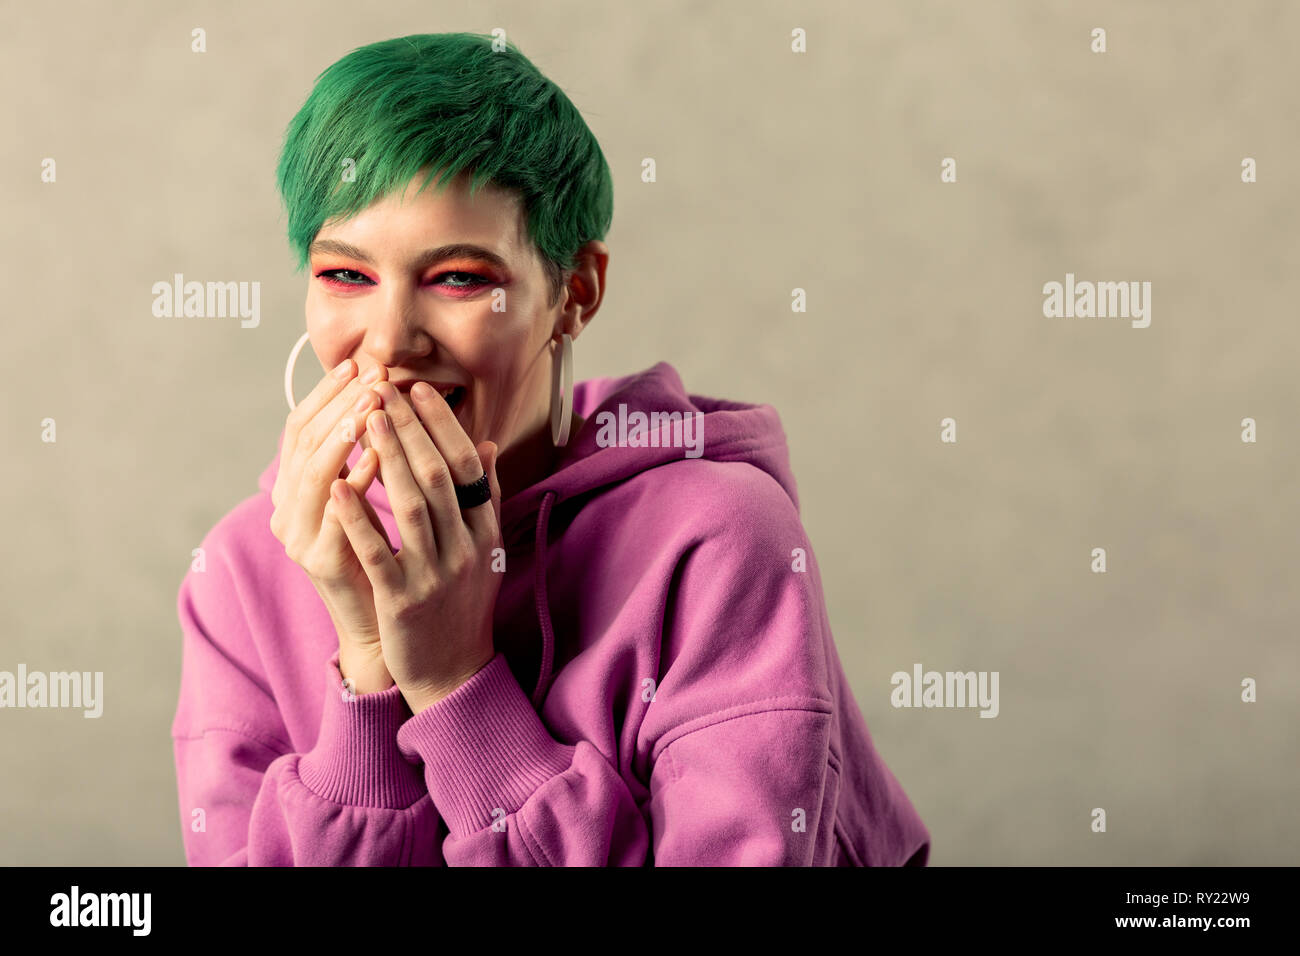 Portrait of a happy green haired woman - Stock Image